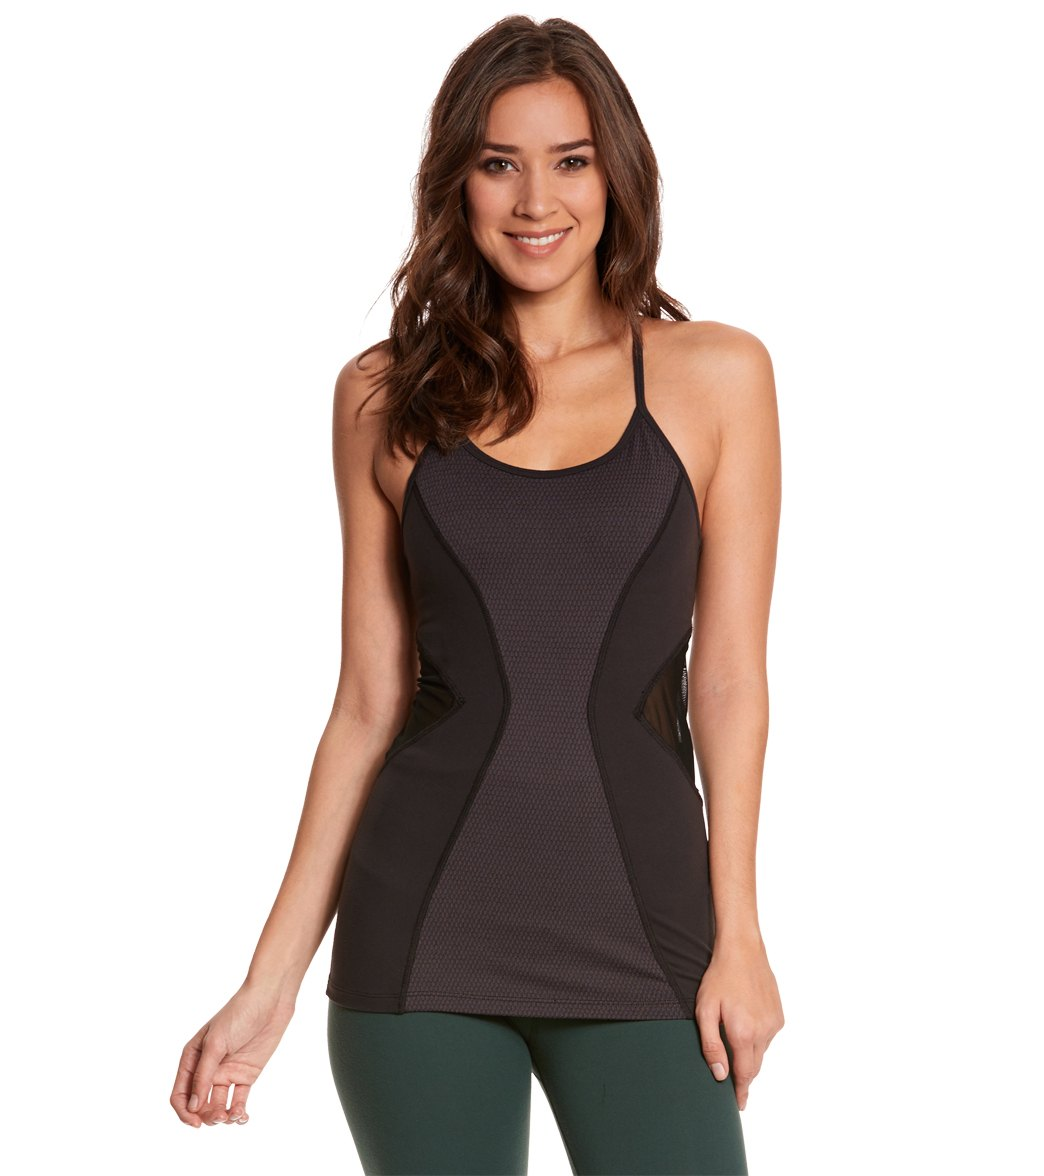 206343fa2d55 Beyond Yoga Deco Mirror Paneled Yoga Tank Top at YogaOutlet.com - Free  Shipping